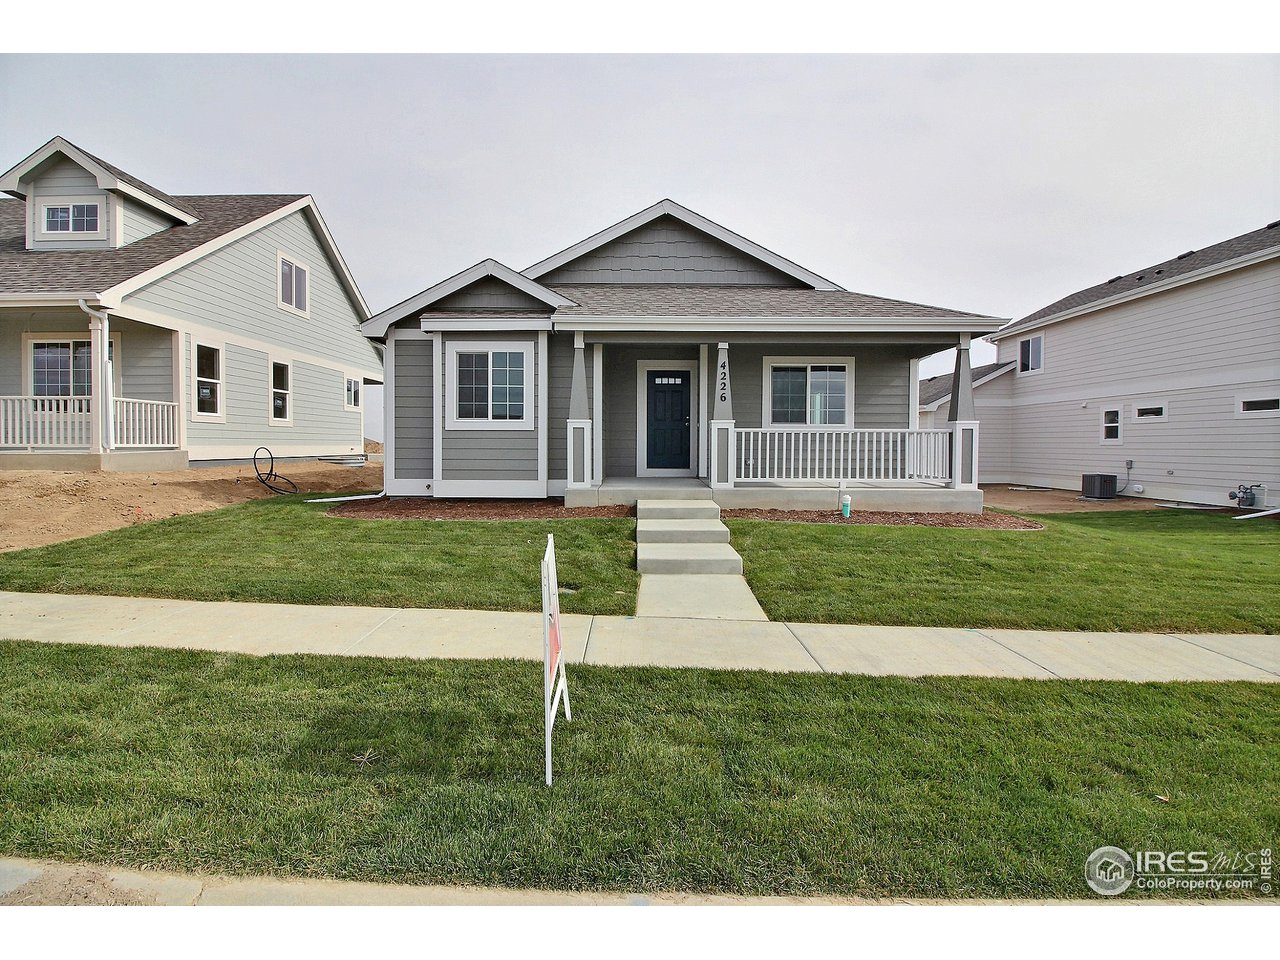 4231 SUNFLOWER RD, EVANS, CO 80620